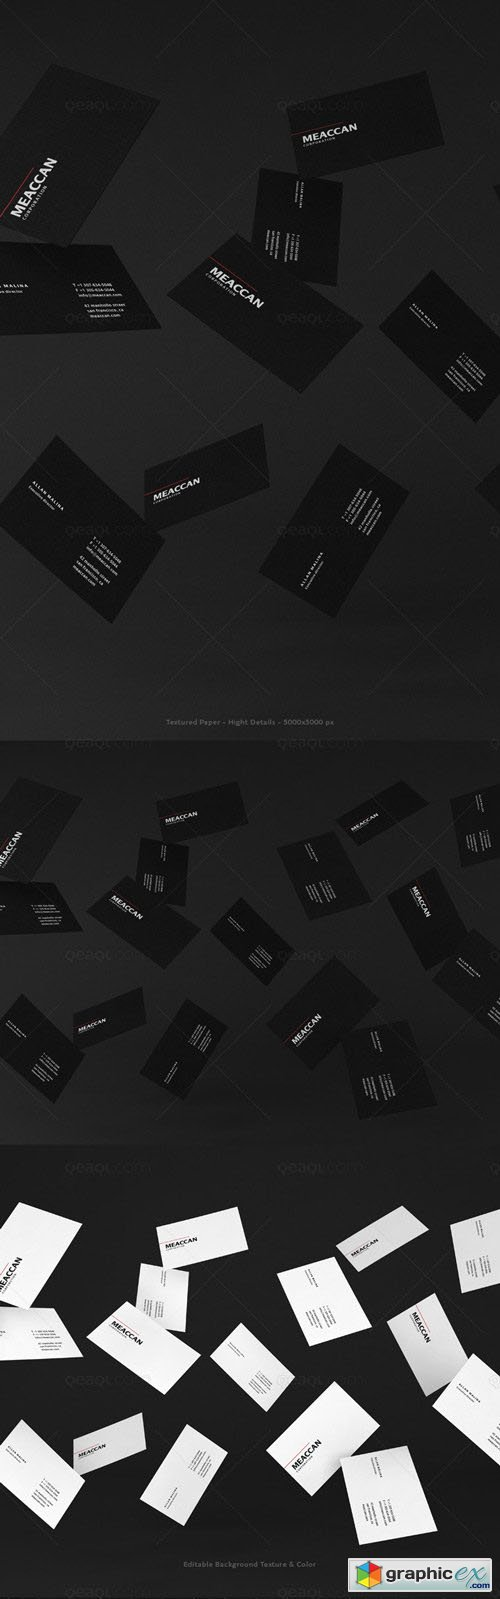 Business Card Mockup - Black And Corporate